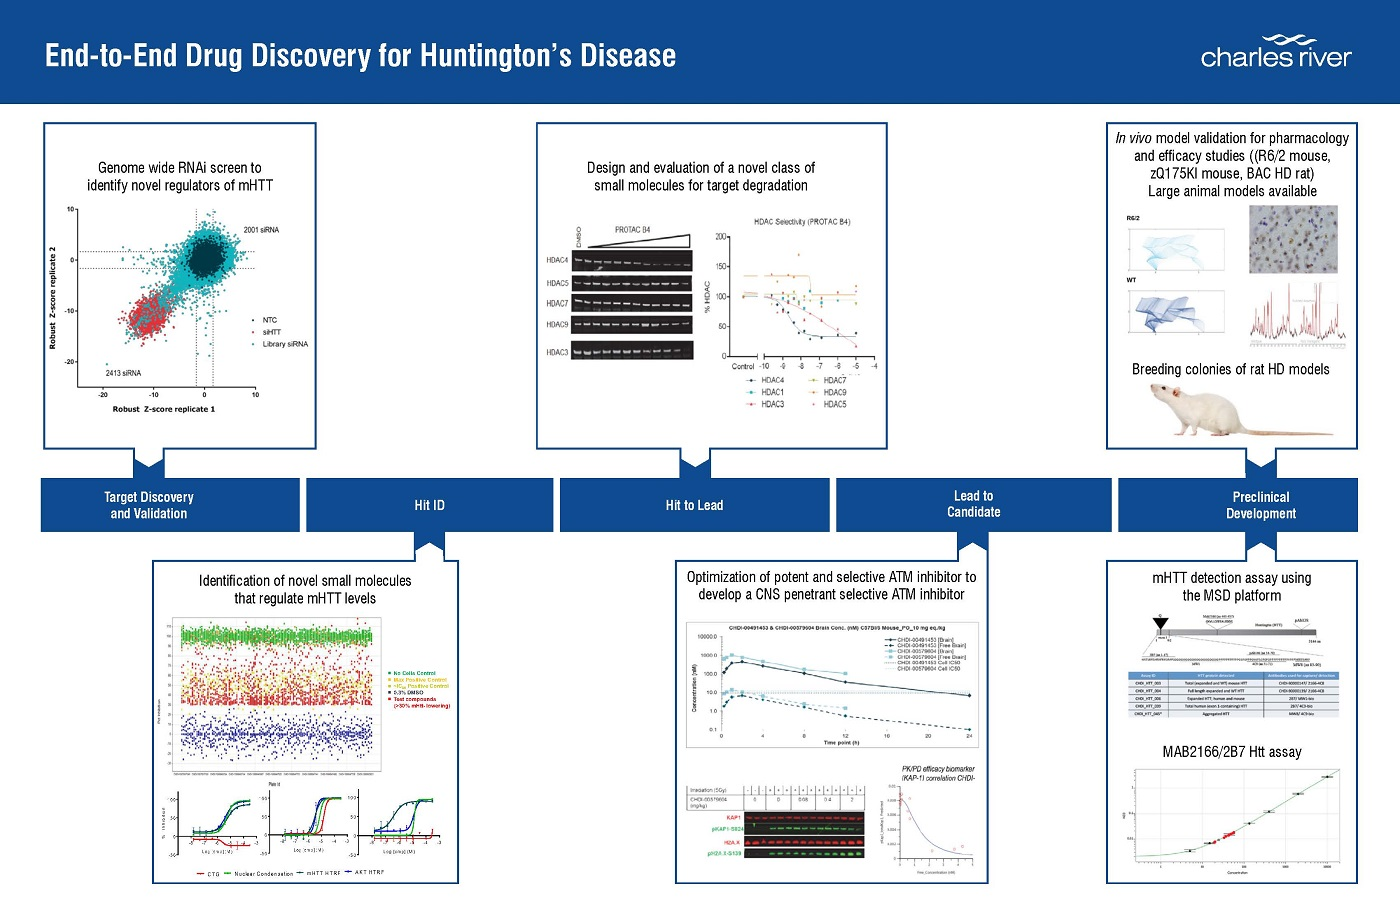 Schematic of End-to-End Drug Discovery Program for Huntington's Disease visualizes the end to end drug discovery capabilities for Huntington's disease highlighting target validation, hit ID, hit-to-lead, lead-to-candidate and preclinical testing of therapeutics.